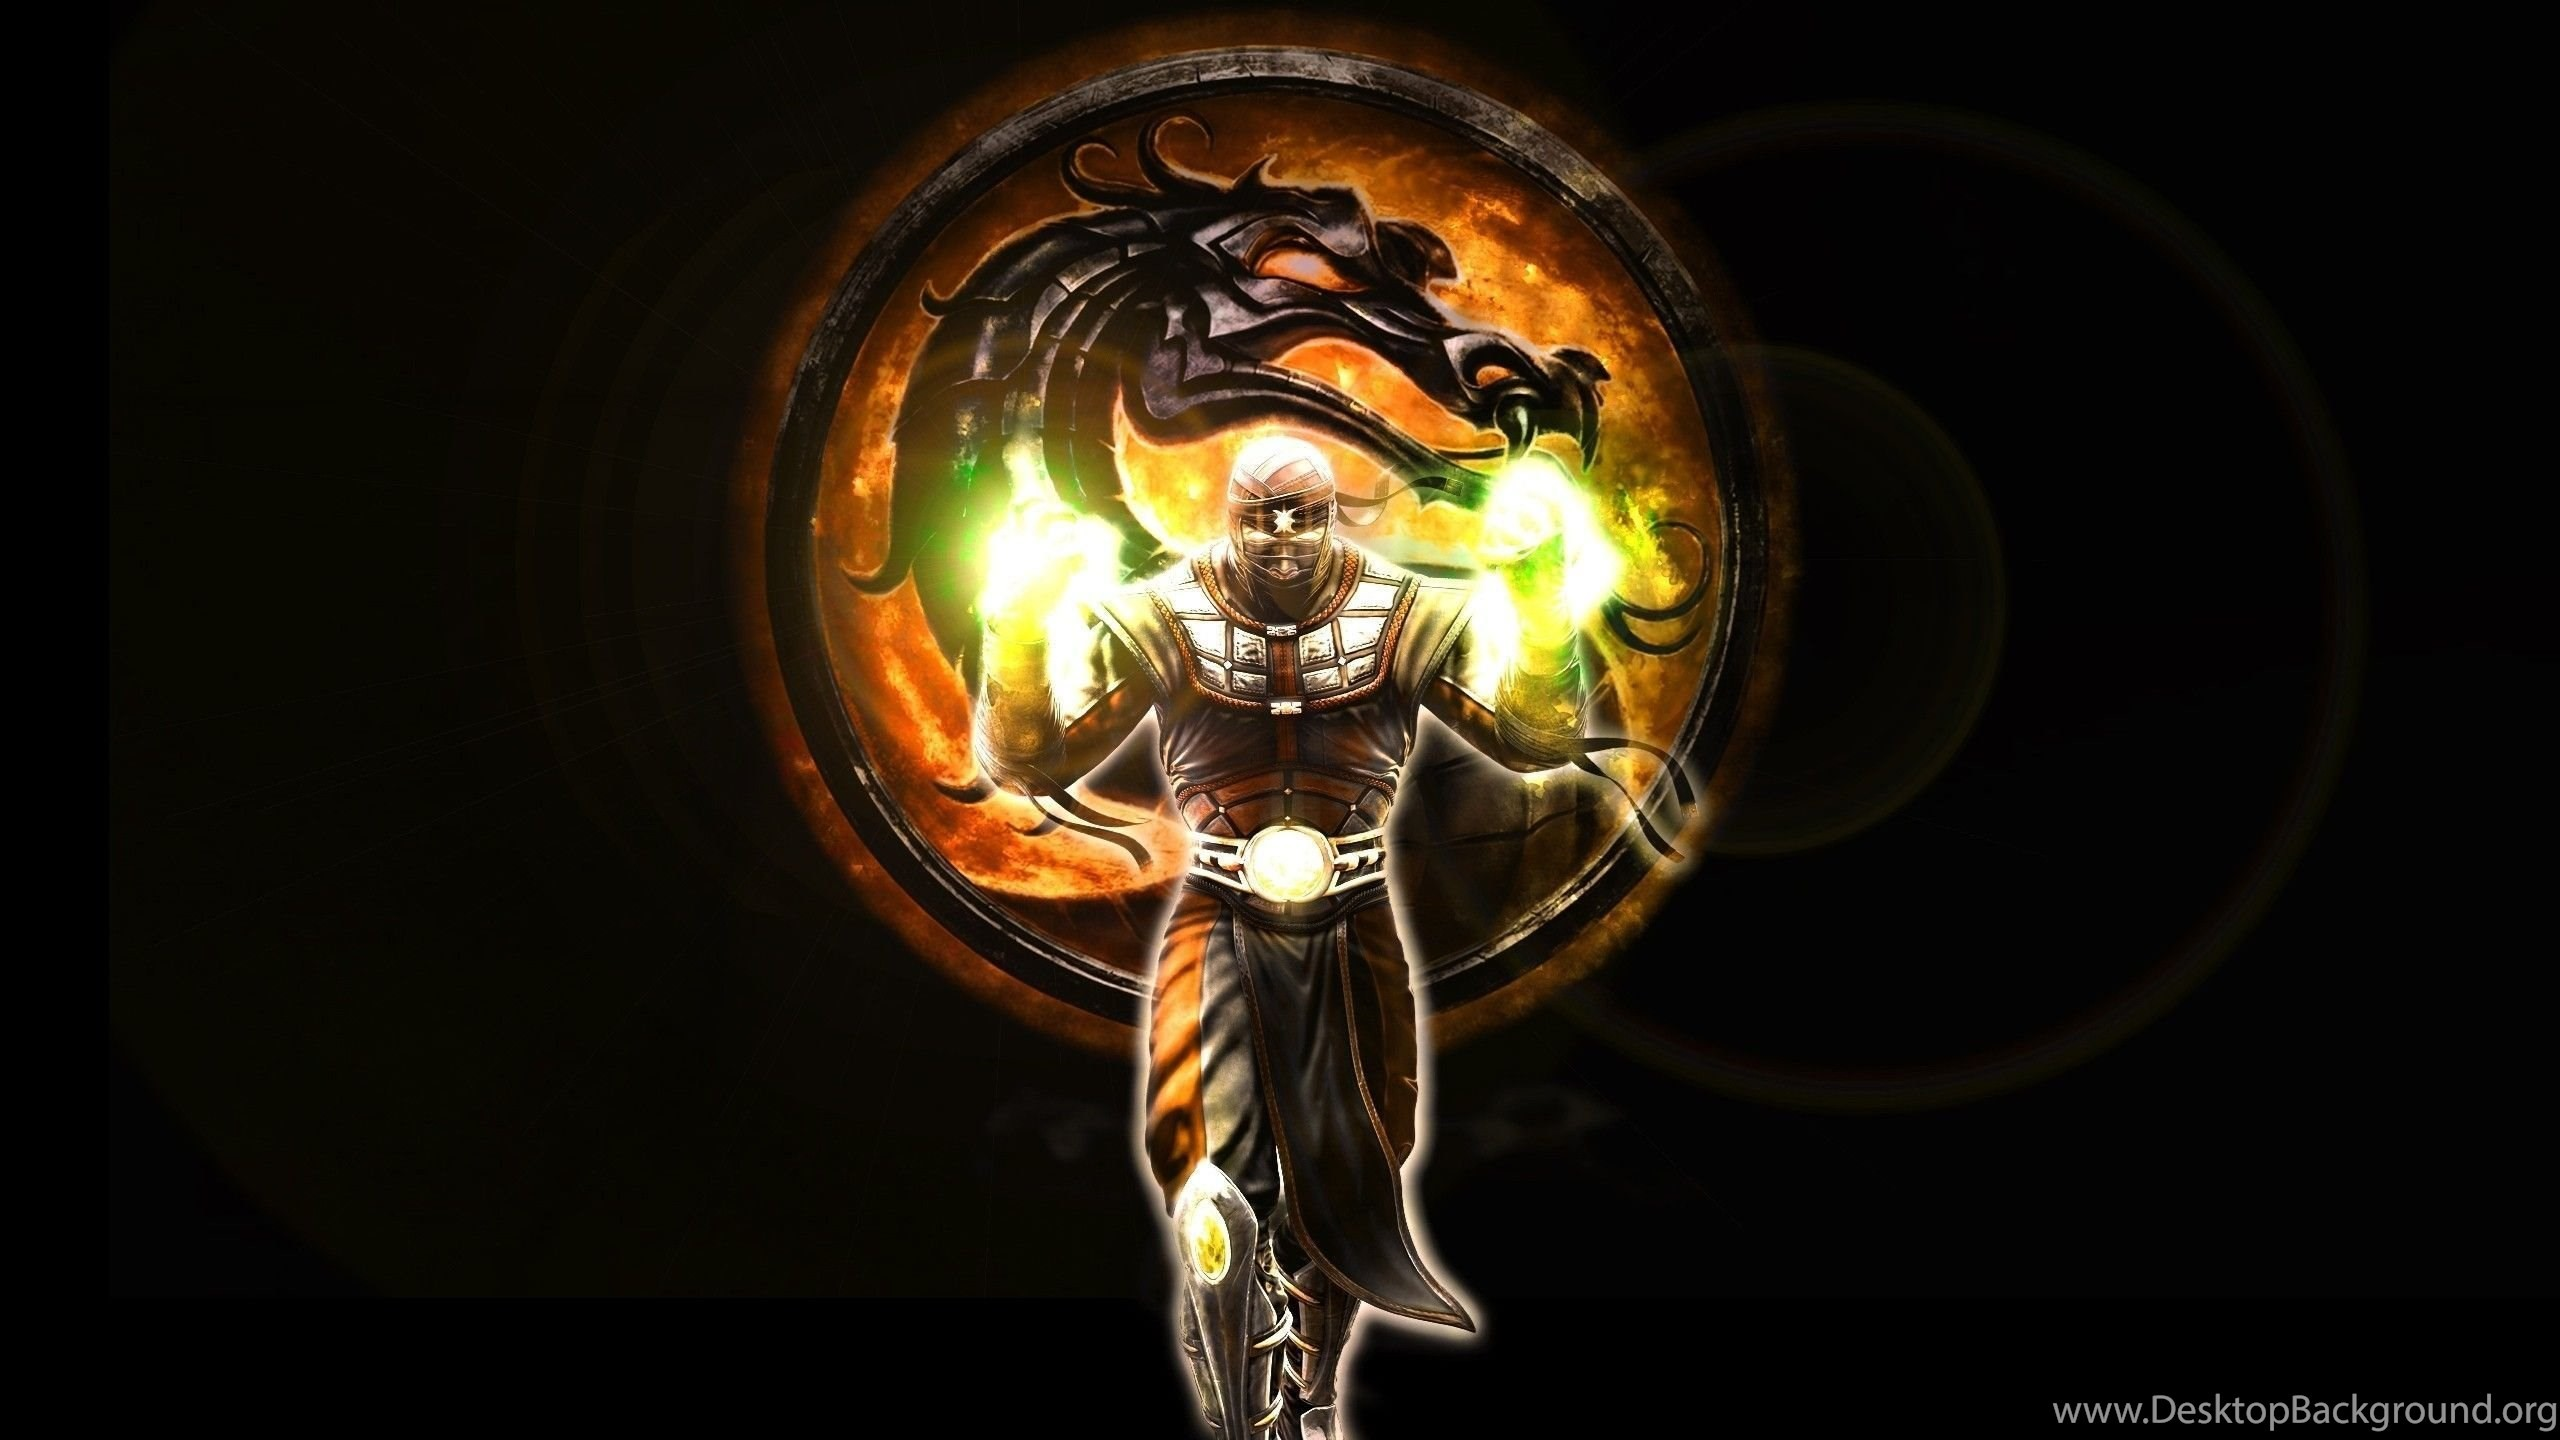 2560x1440 Free Download Full HD Mortal Kombat Logo Wallpaper, HQ Backgrounds ...  Desktop Background